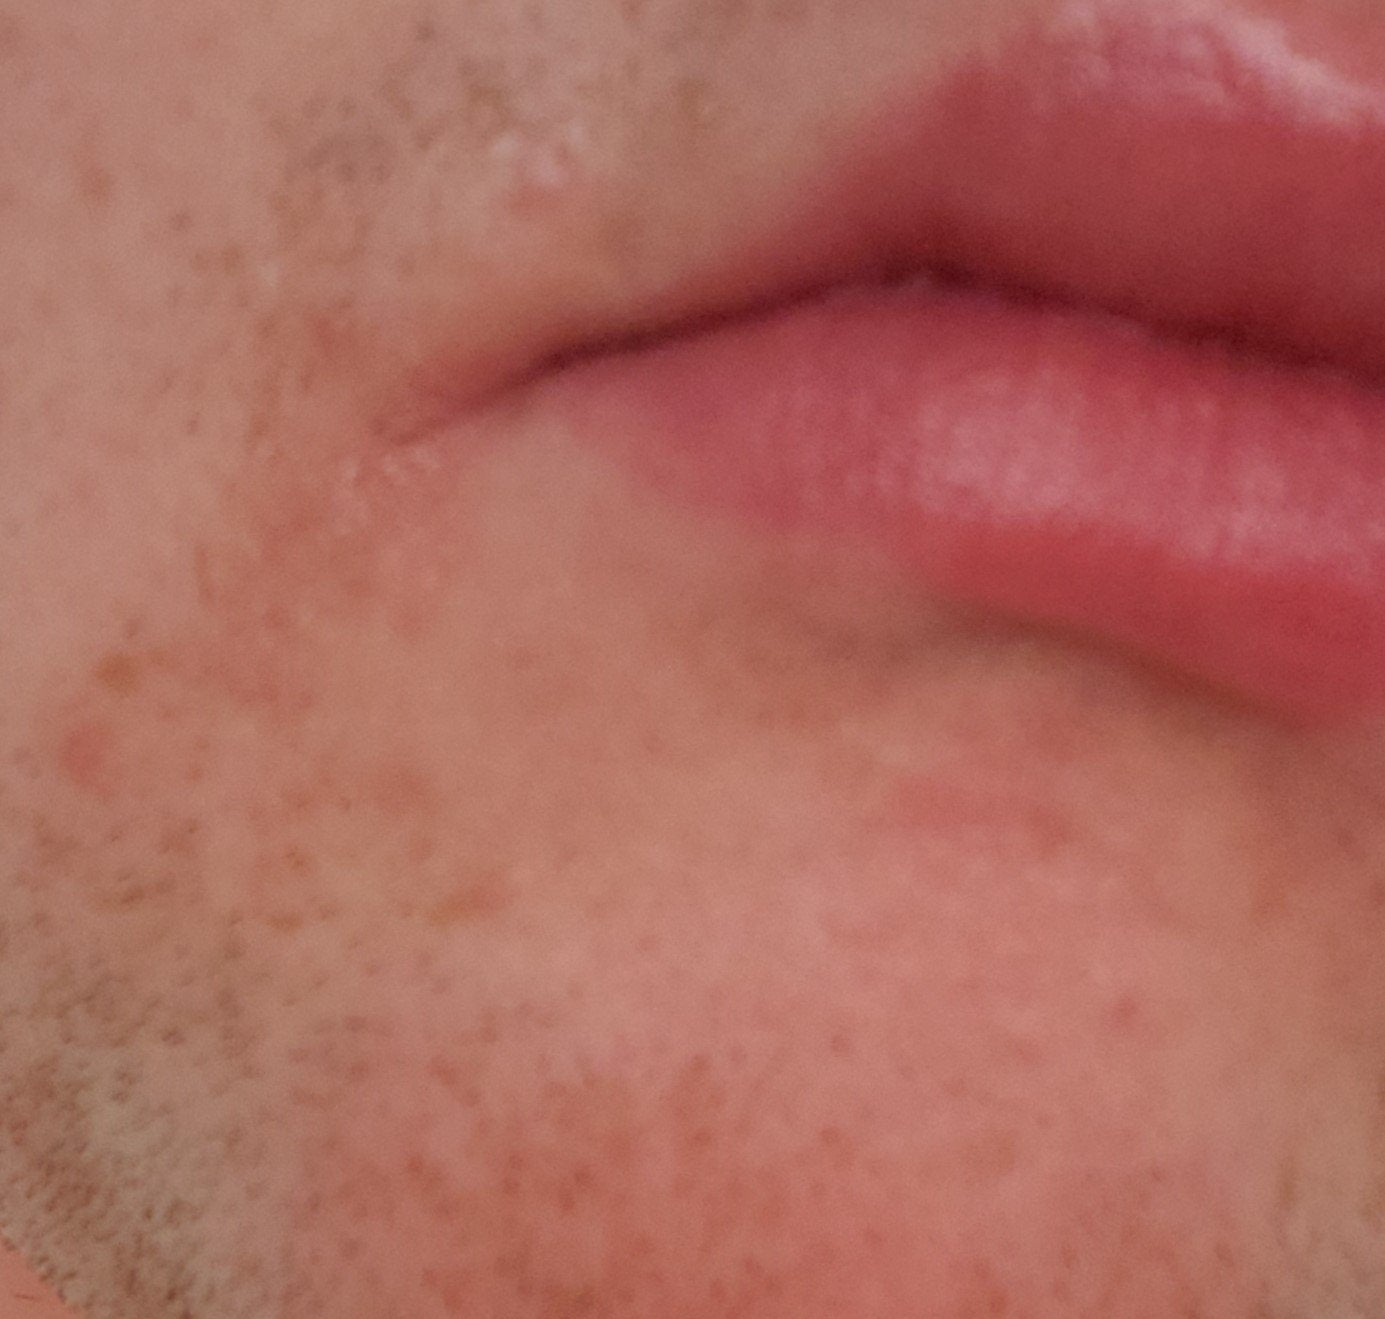 [Skin Concerns] possible angular cheilitis? unsure.